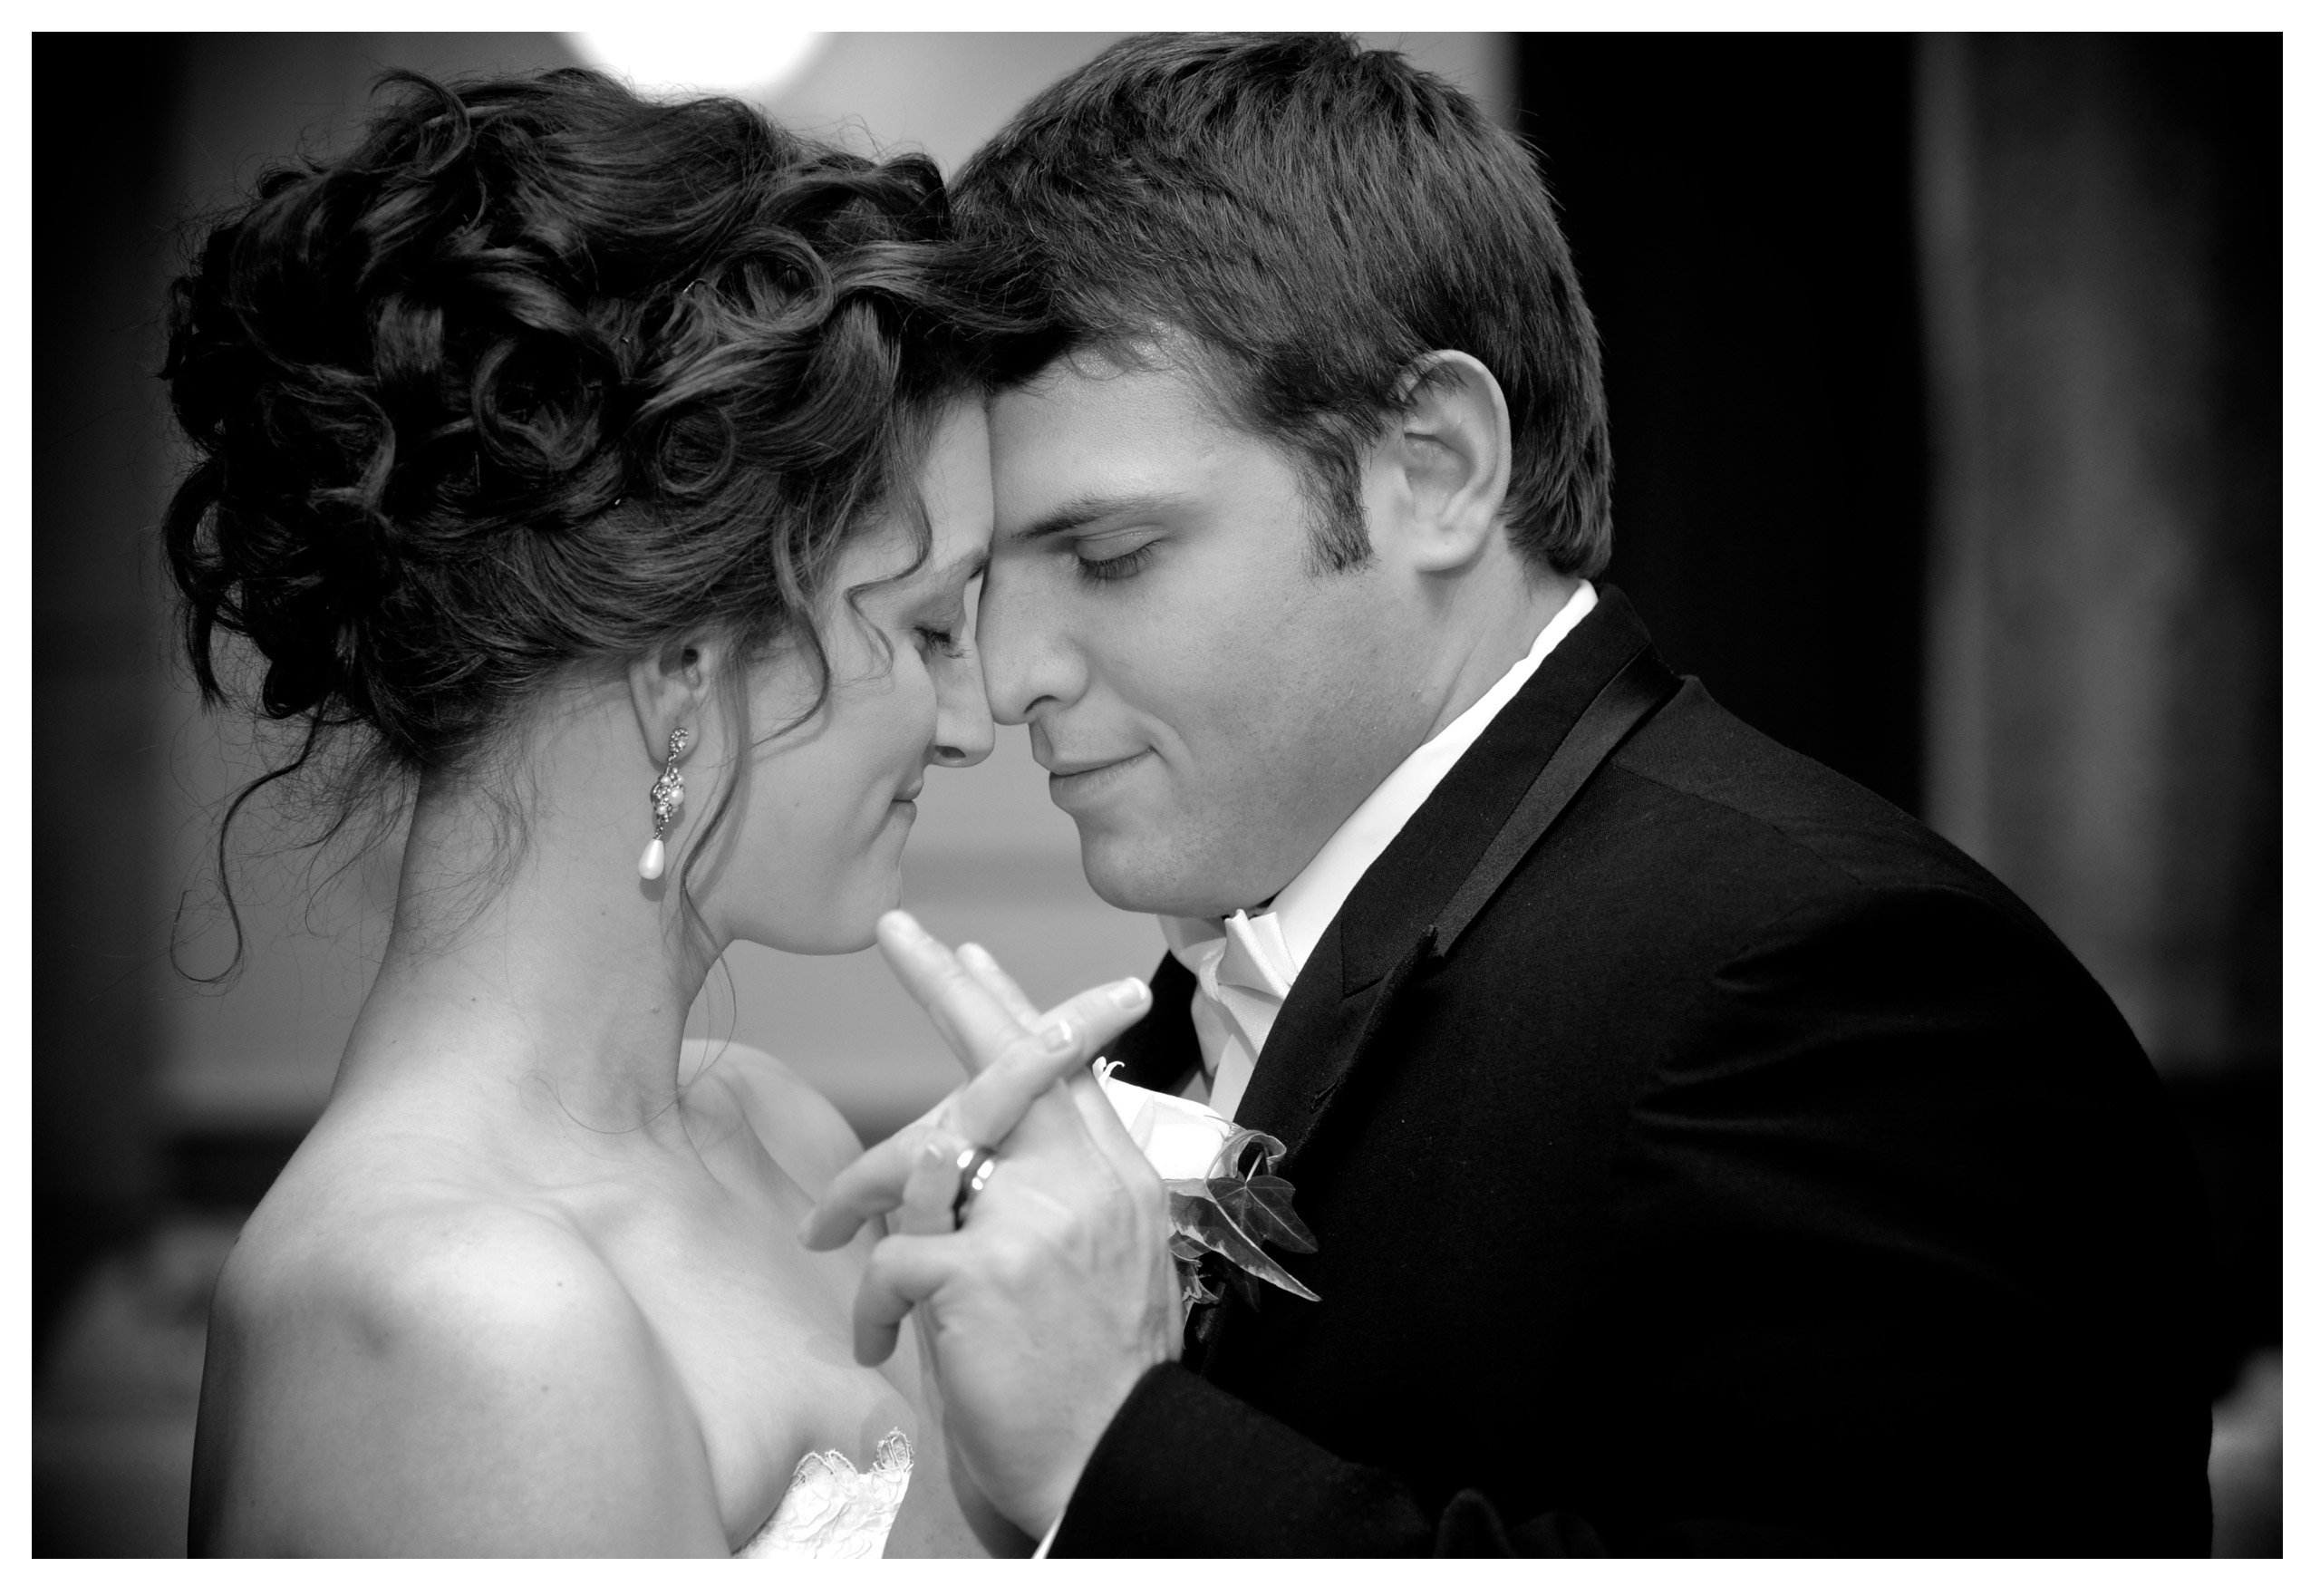 michigan wedding photographer photographs a couples first dance that the Inn at St. Johns.